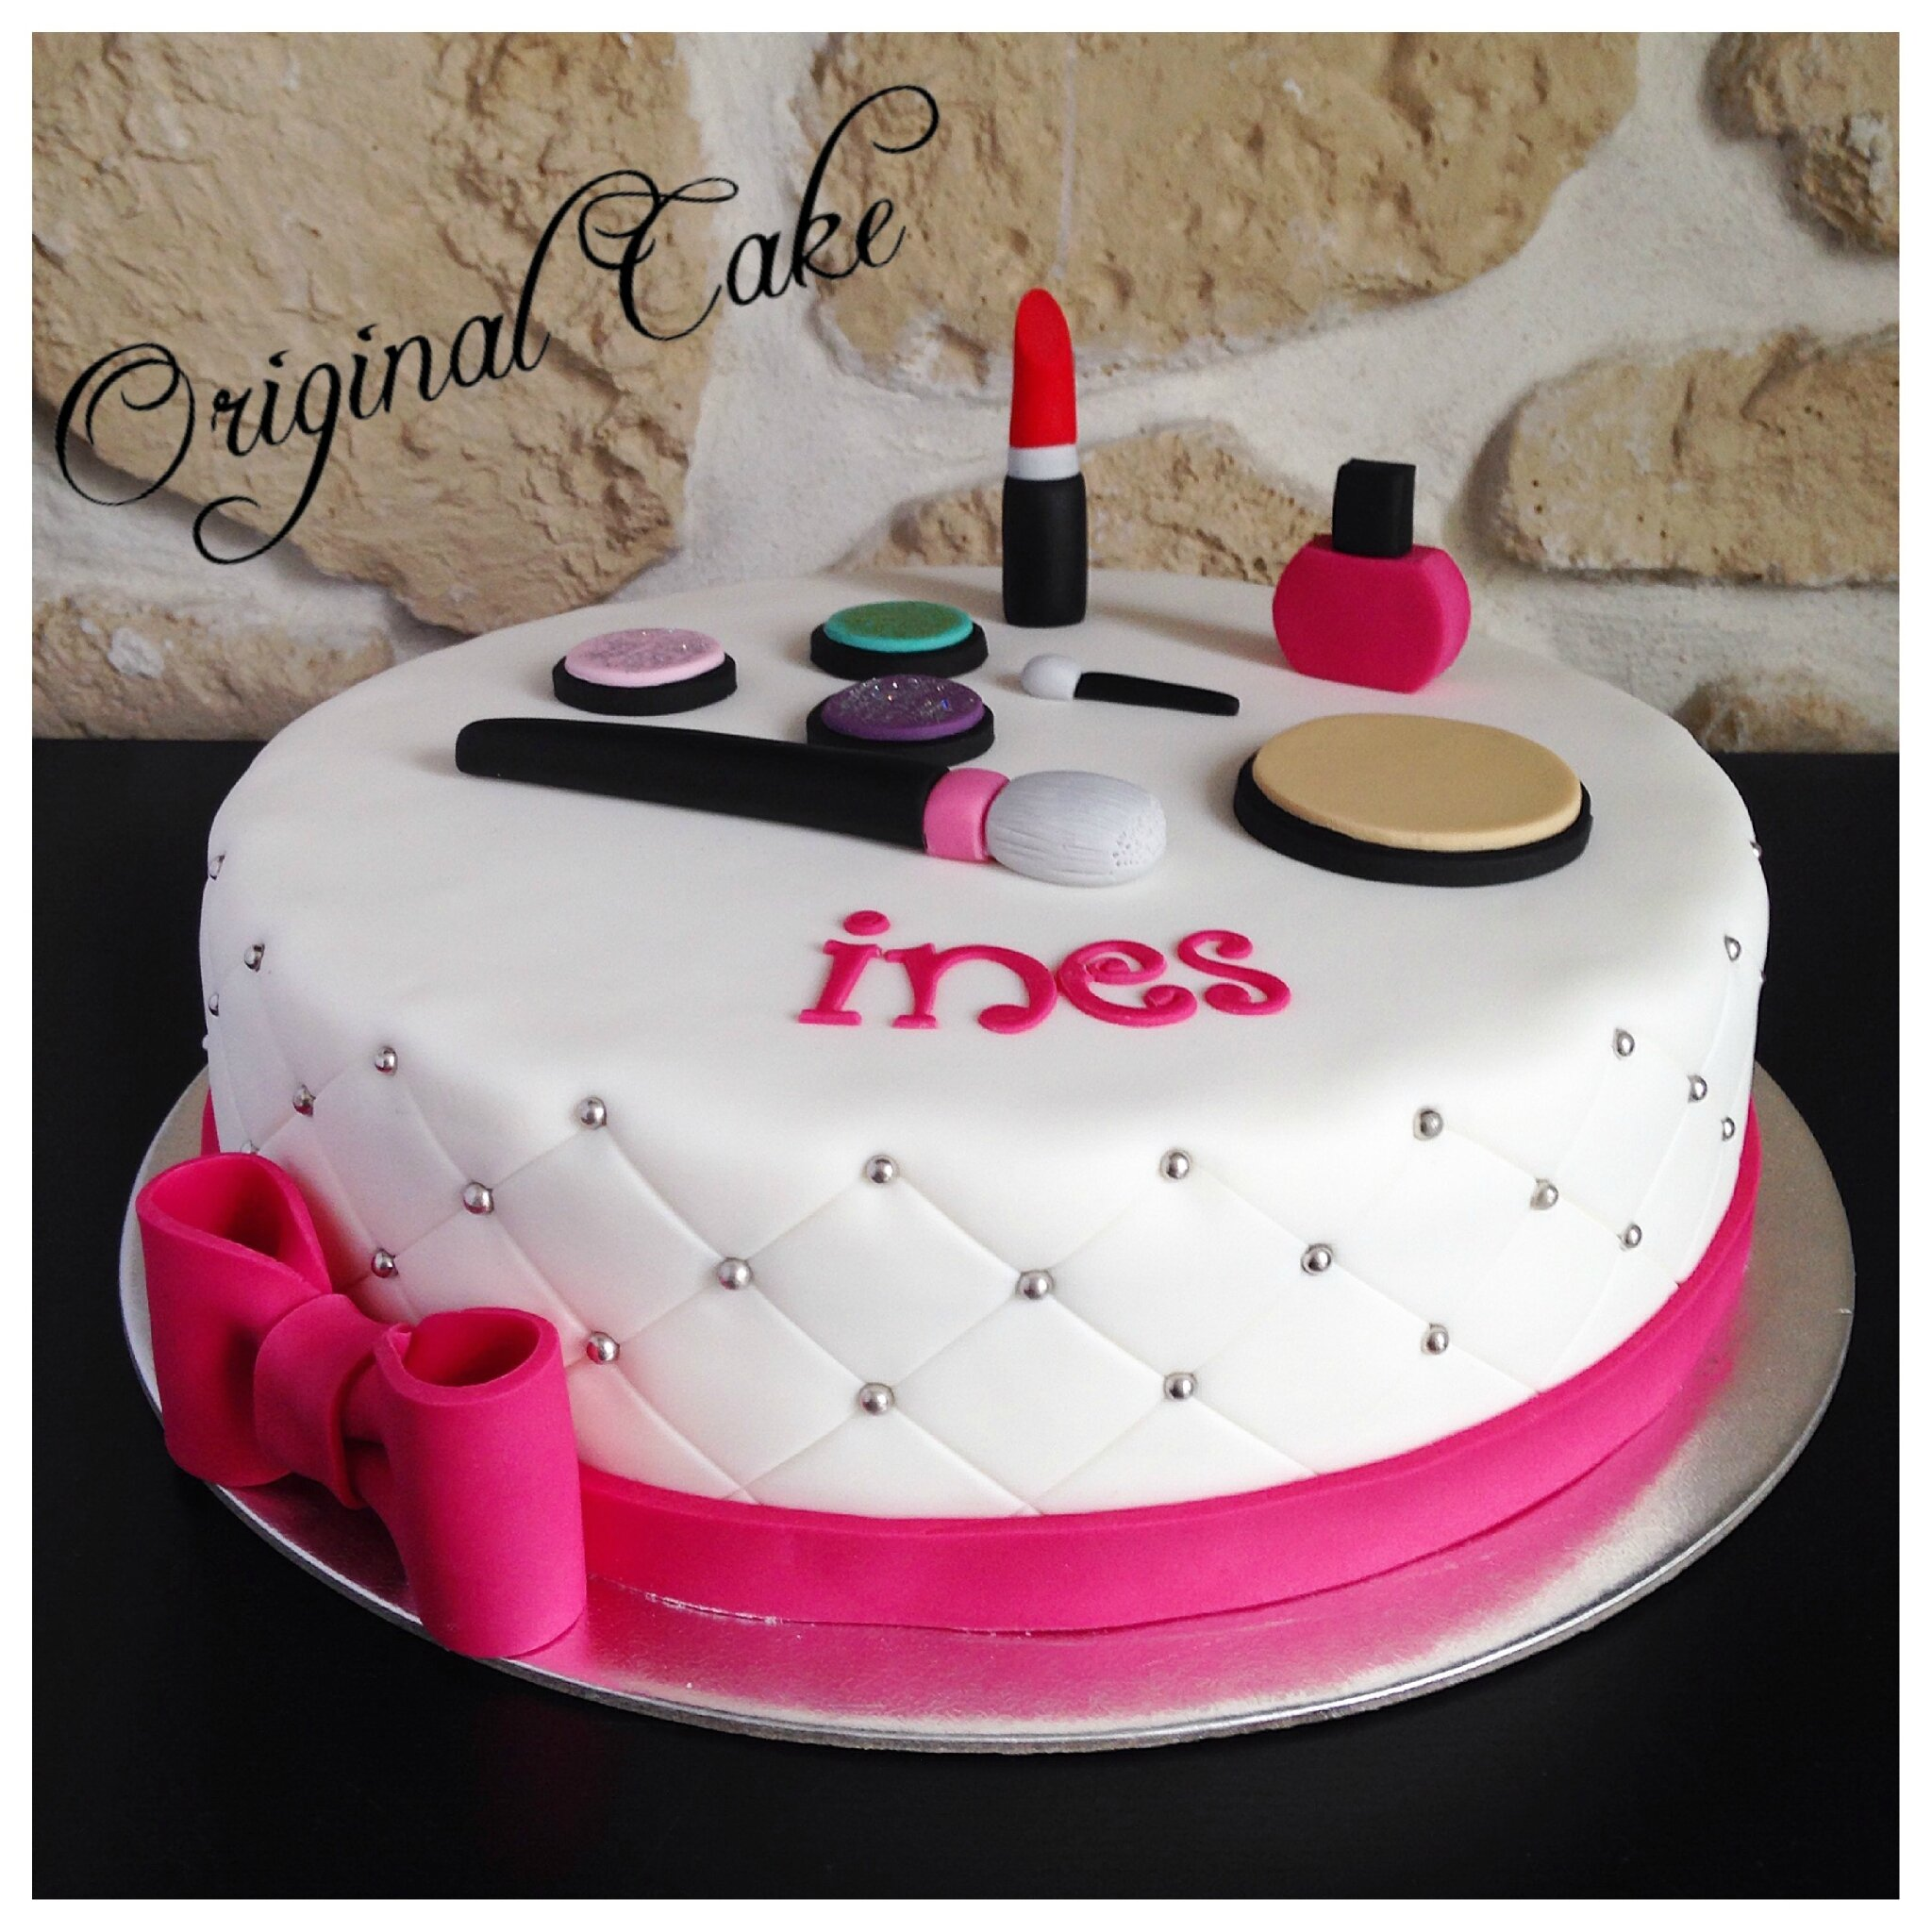 Cours De Décoration De Gateau Gâteau Maquillage Girly Original Cake